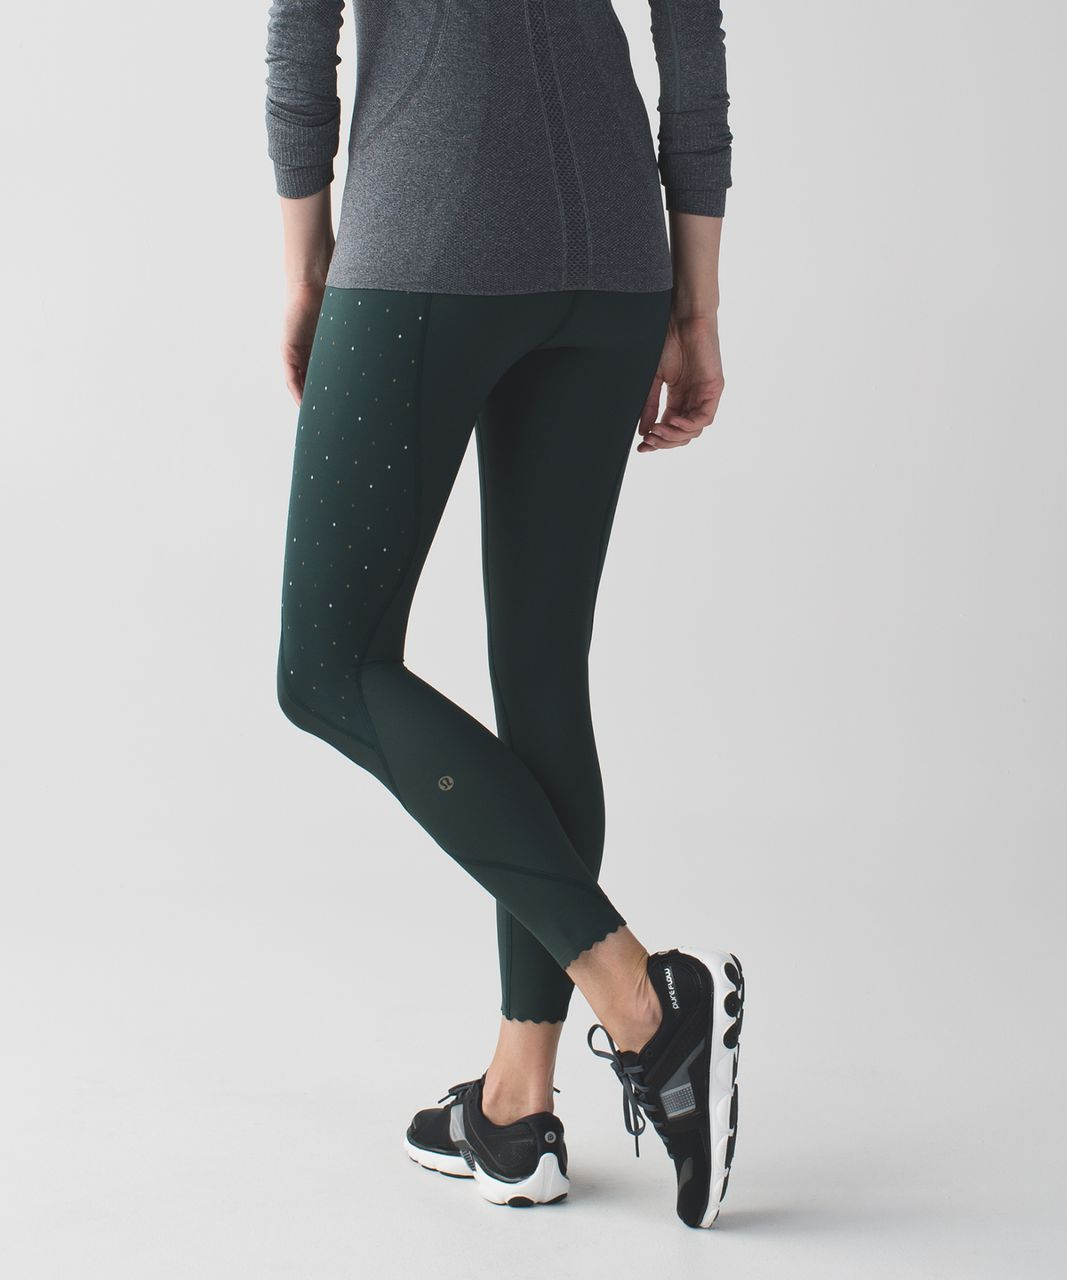 b4c24b6f53 Lululemon Tight Stuff Tight *Reflective - Dark Fuel / Night Fall Dark Fuel  Tricolor